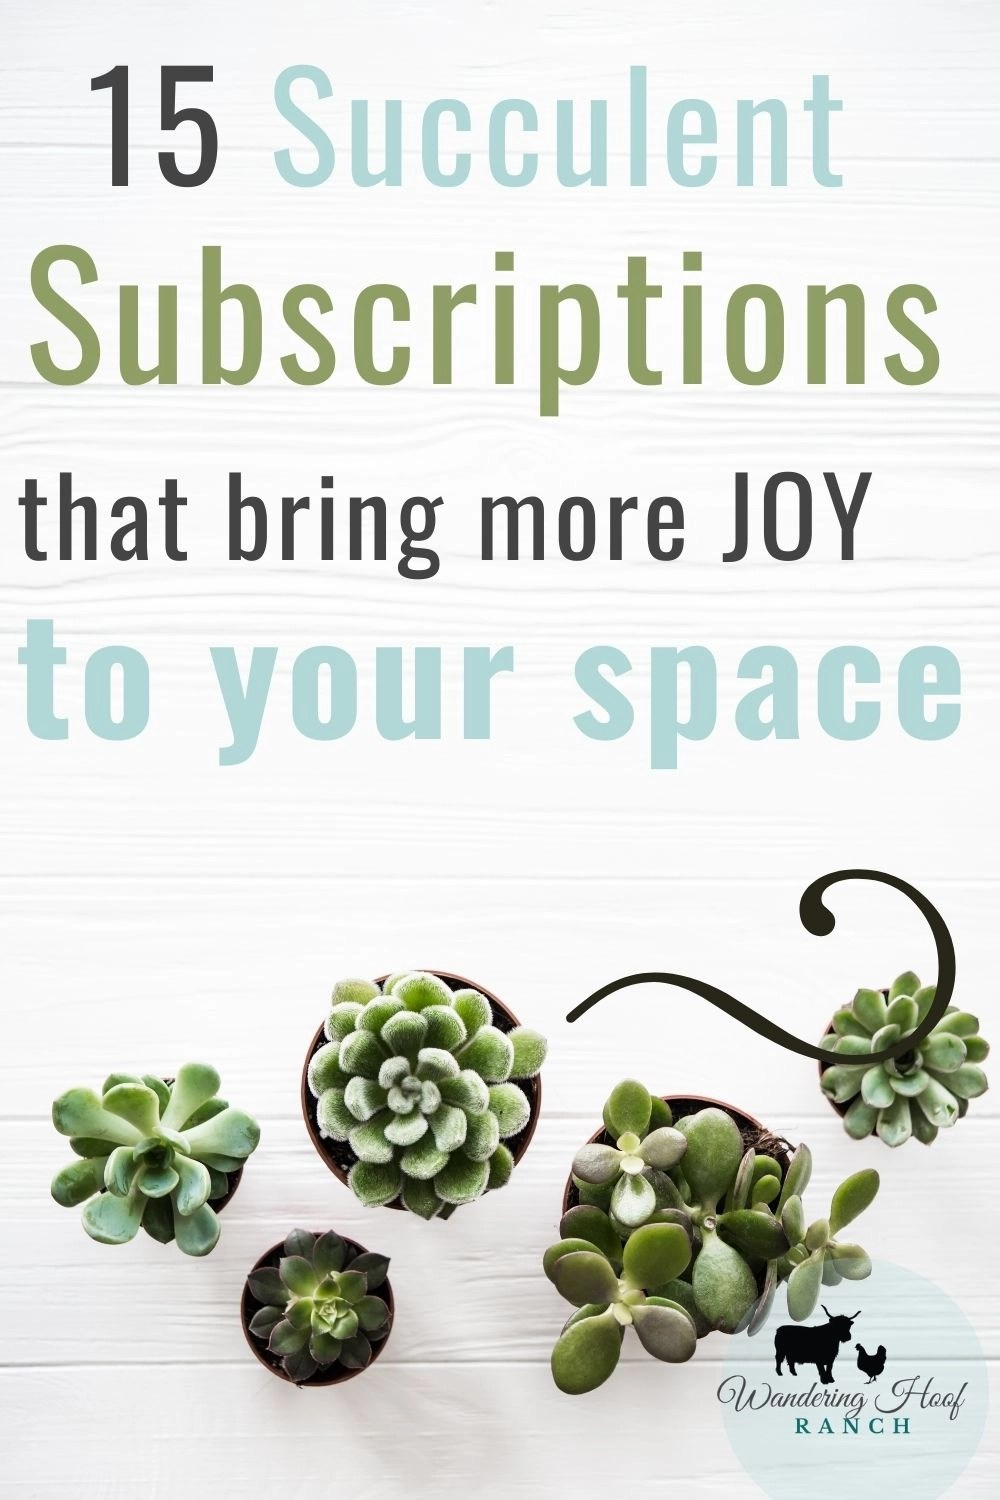 15 succulent subscriptions that bring more Joy to your space pin image